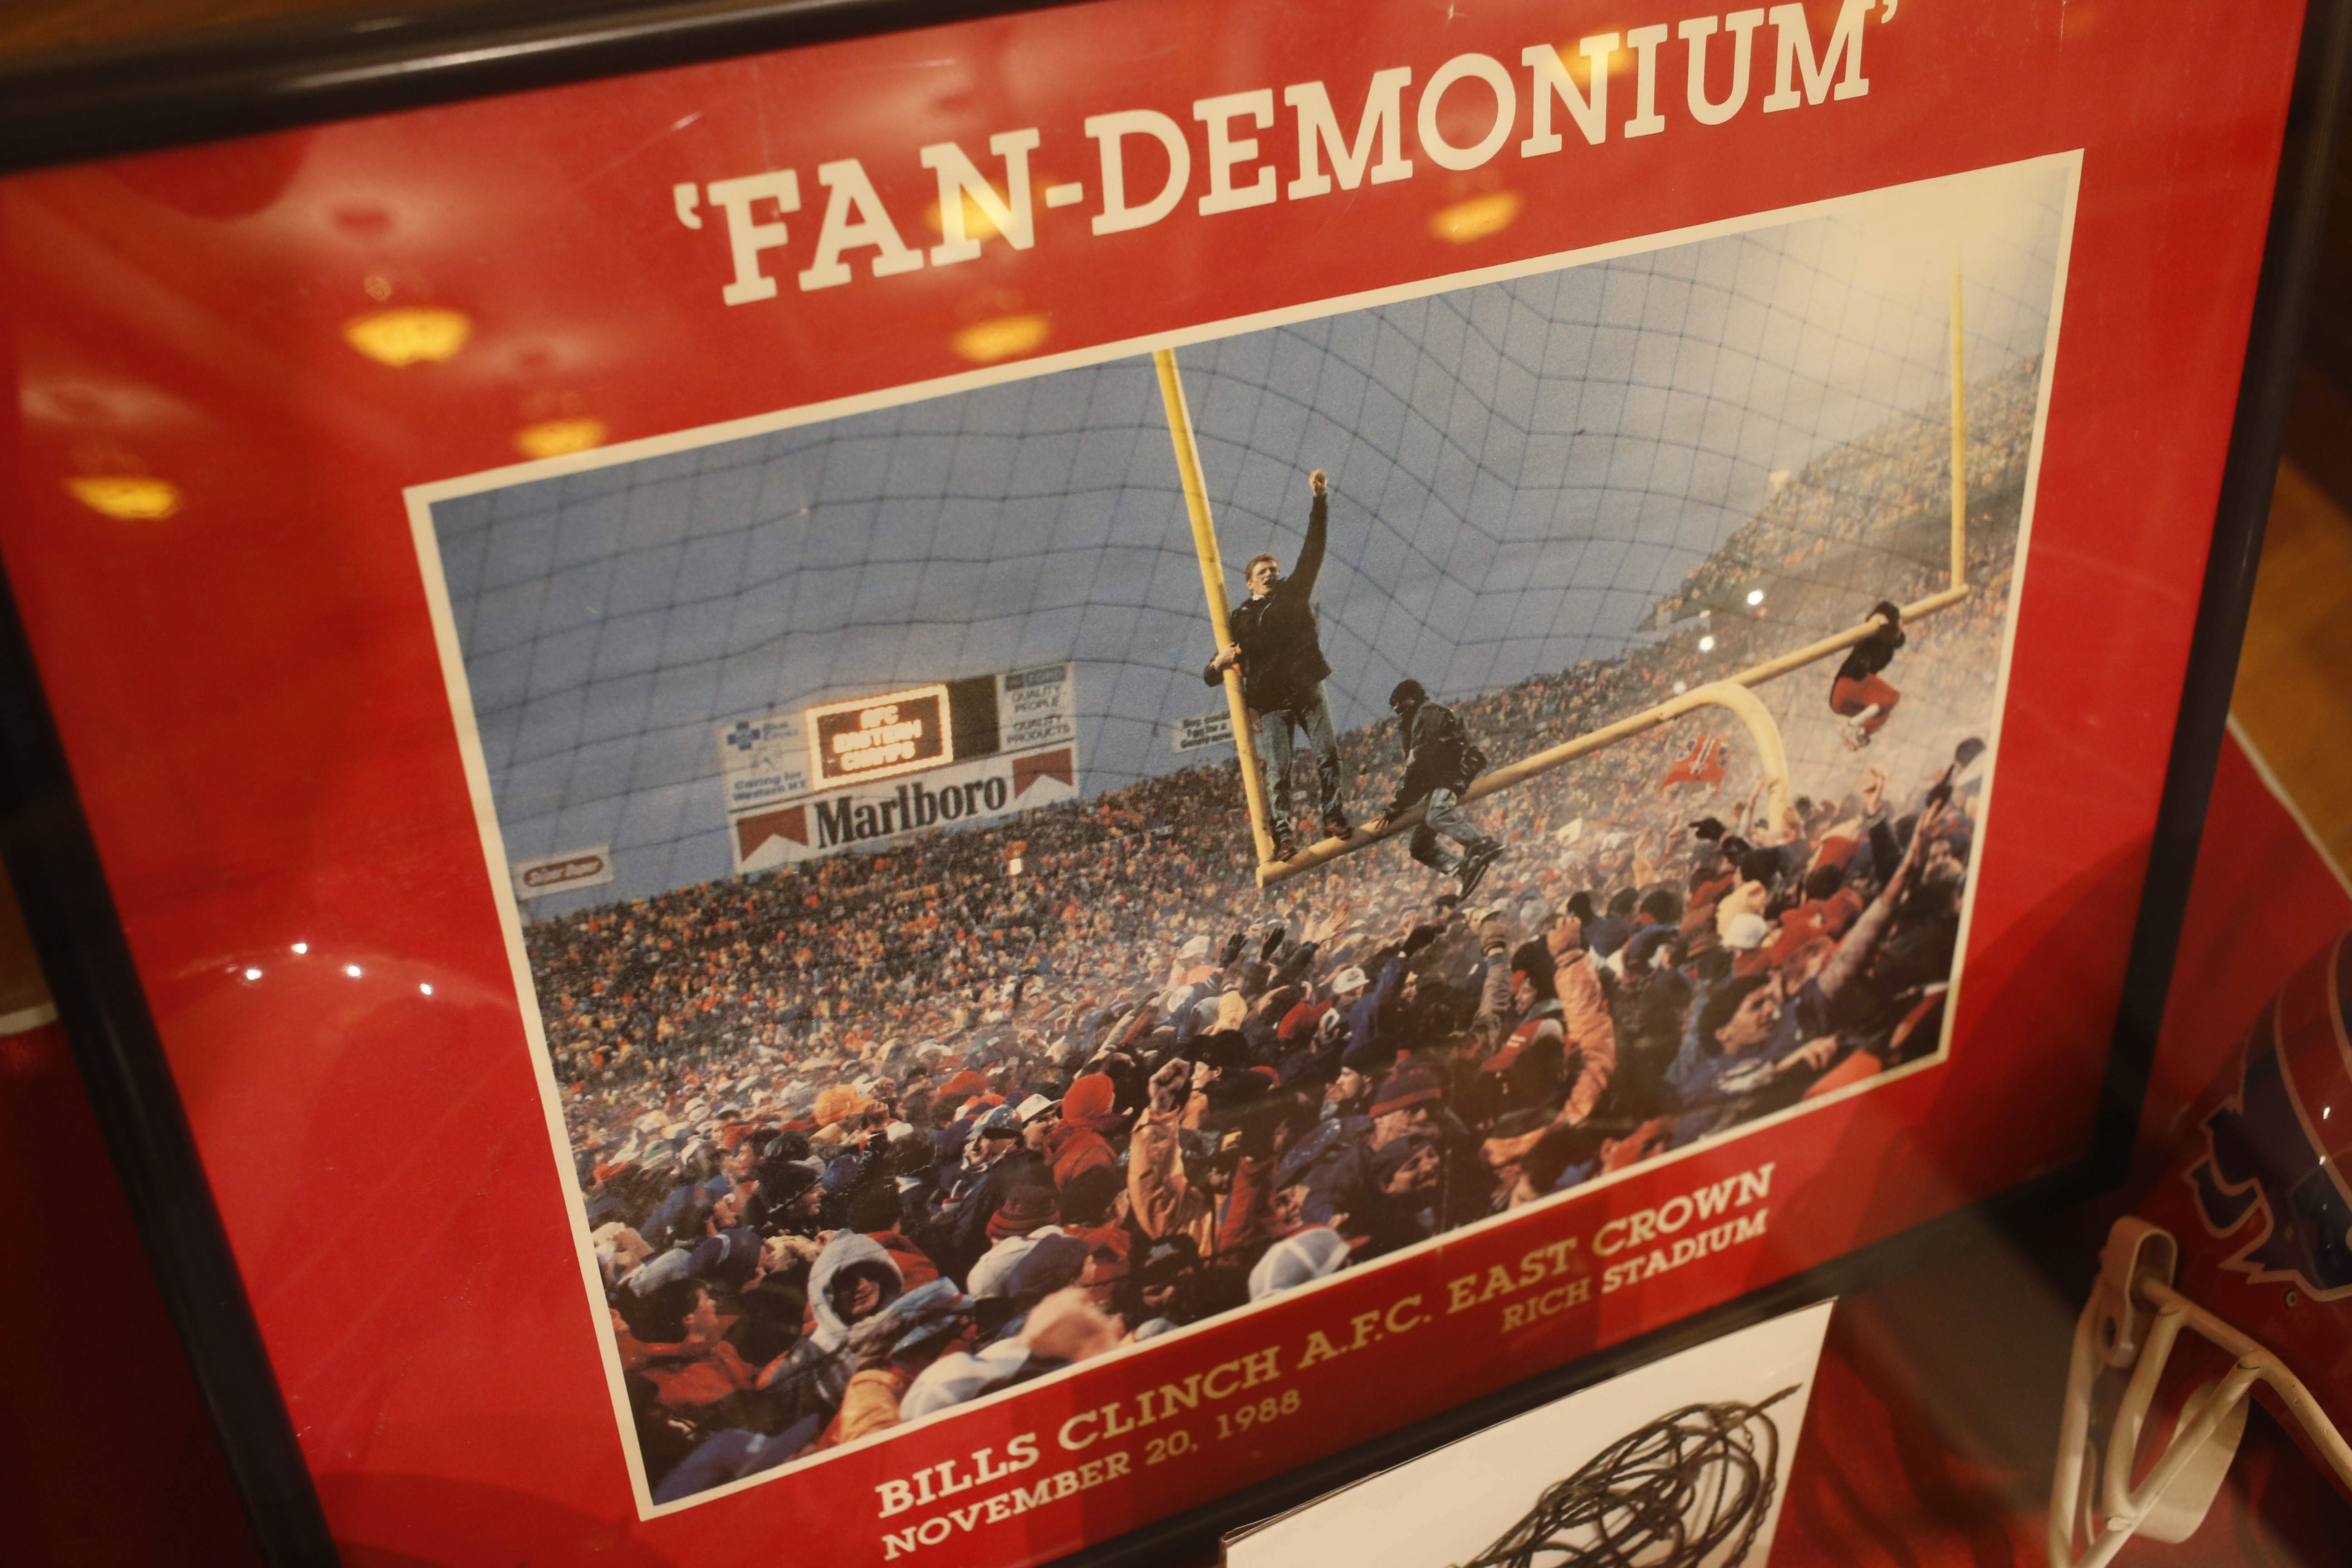 A poster from the 1988 AFC East championship game against the Jets, better known by fans as the 'Fan-Demonium' game, from the collection of Bills fan Greg Tranter on display at the Buffalo History Museum, Tuesday, April 26, 2016.  (Derek Gee/Buffalo News)